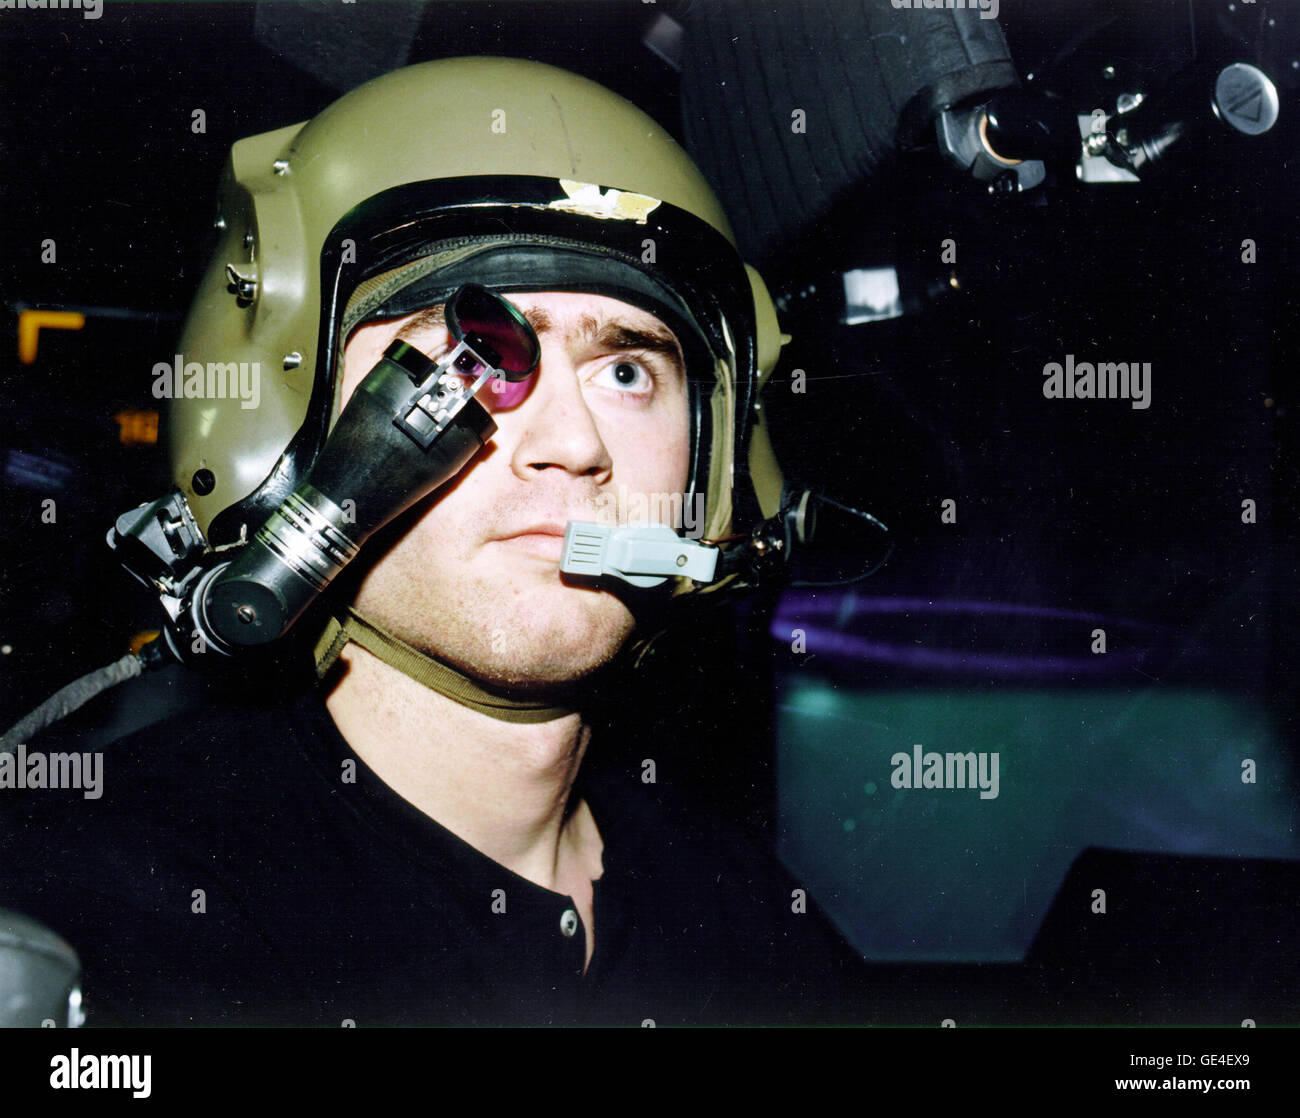 The AH-64 Apache helicopter simulator with Intergrated Helmet & Display Sighting System (IHADSS) at the - Stock Image